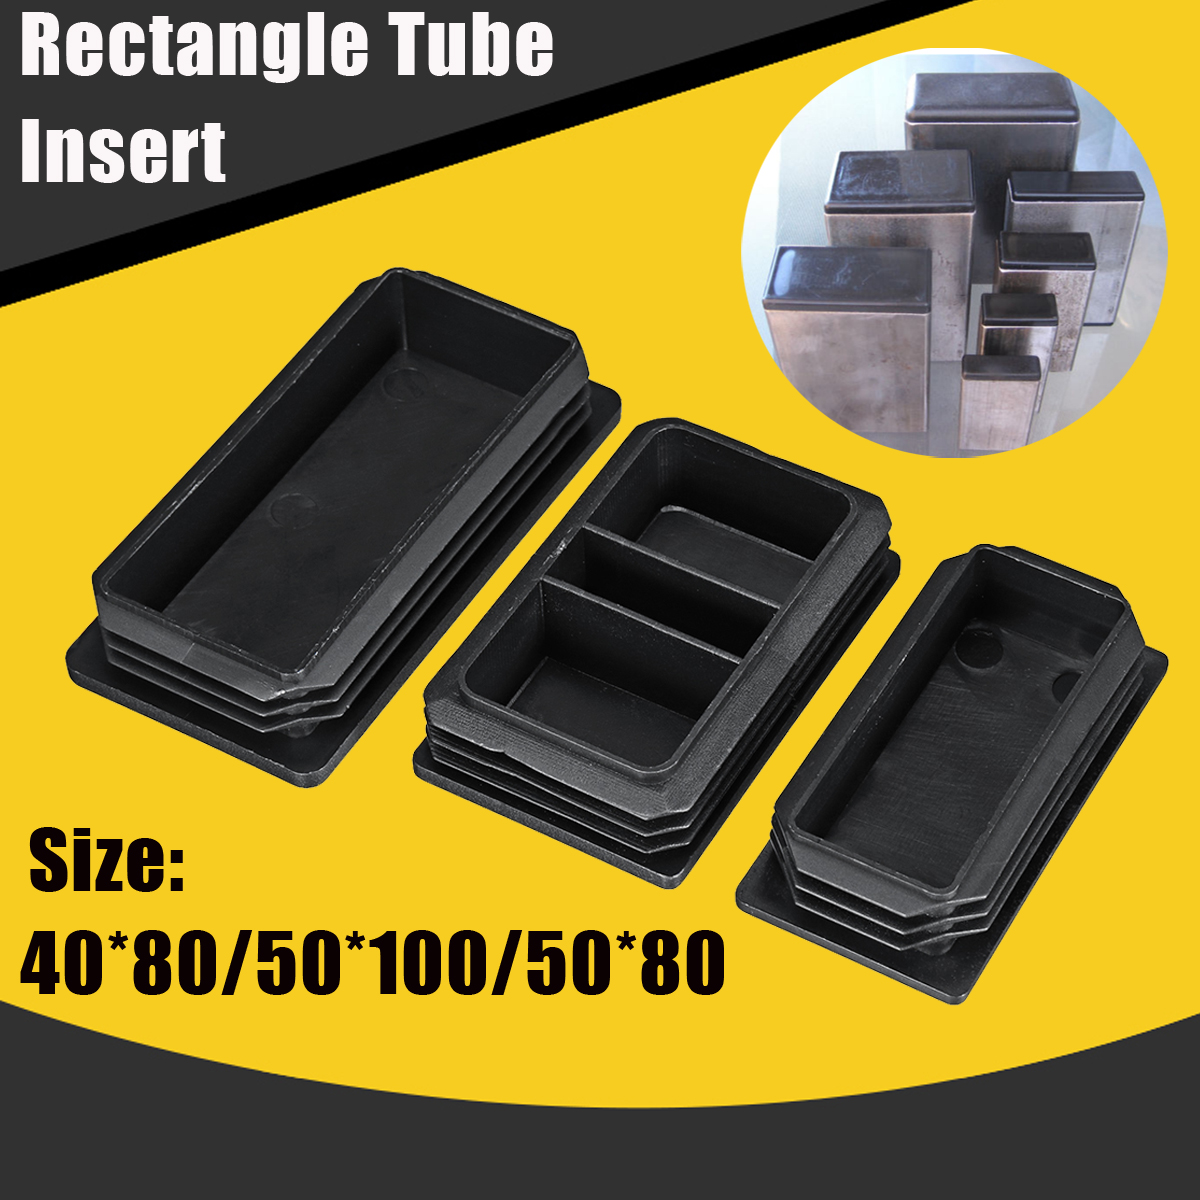 New 40x80/50x100/50x80 Rectangle Tubing Insert Plastic End Cap Finishing Plug Oblong Hole Insert